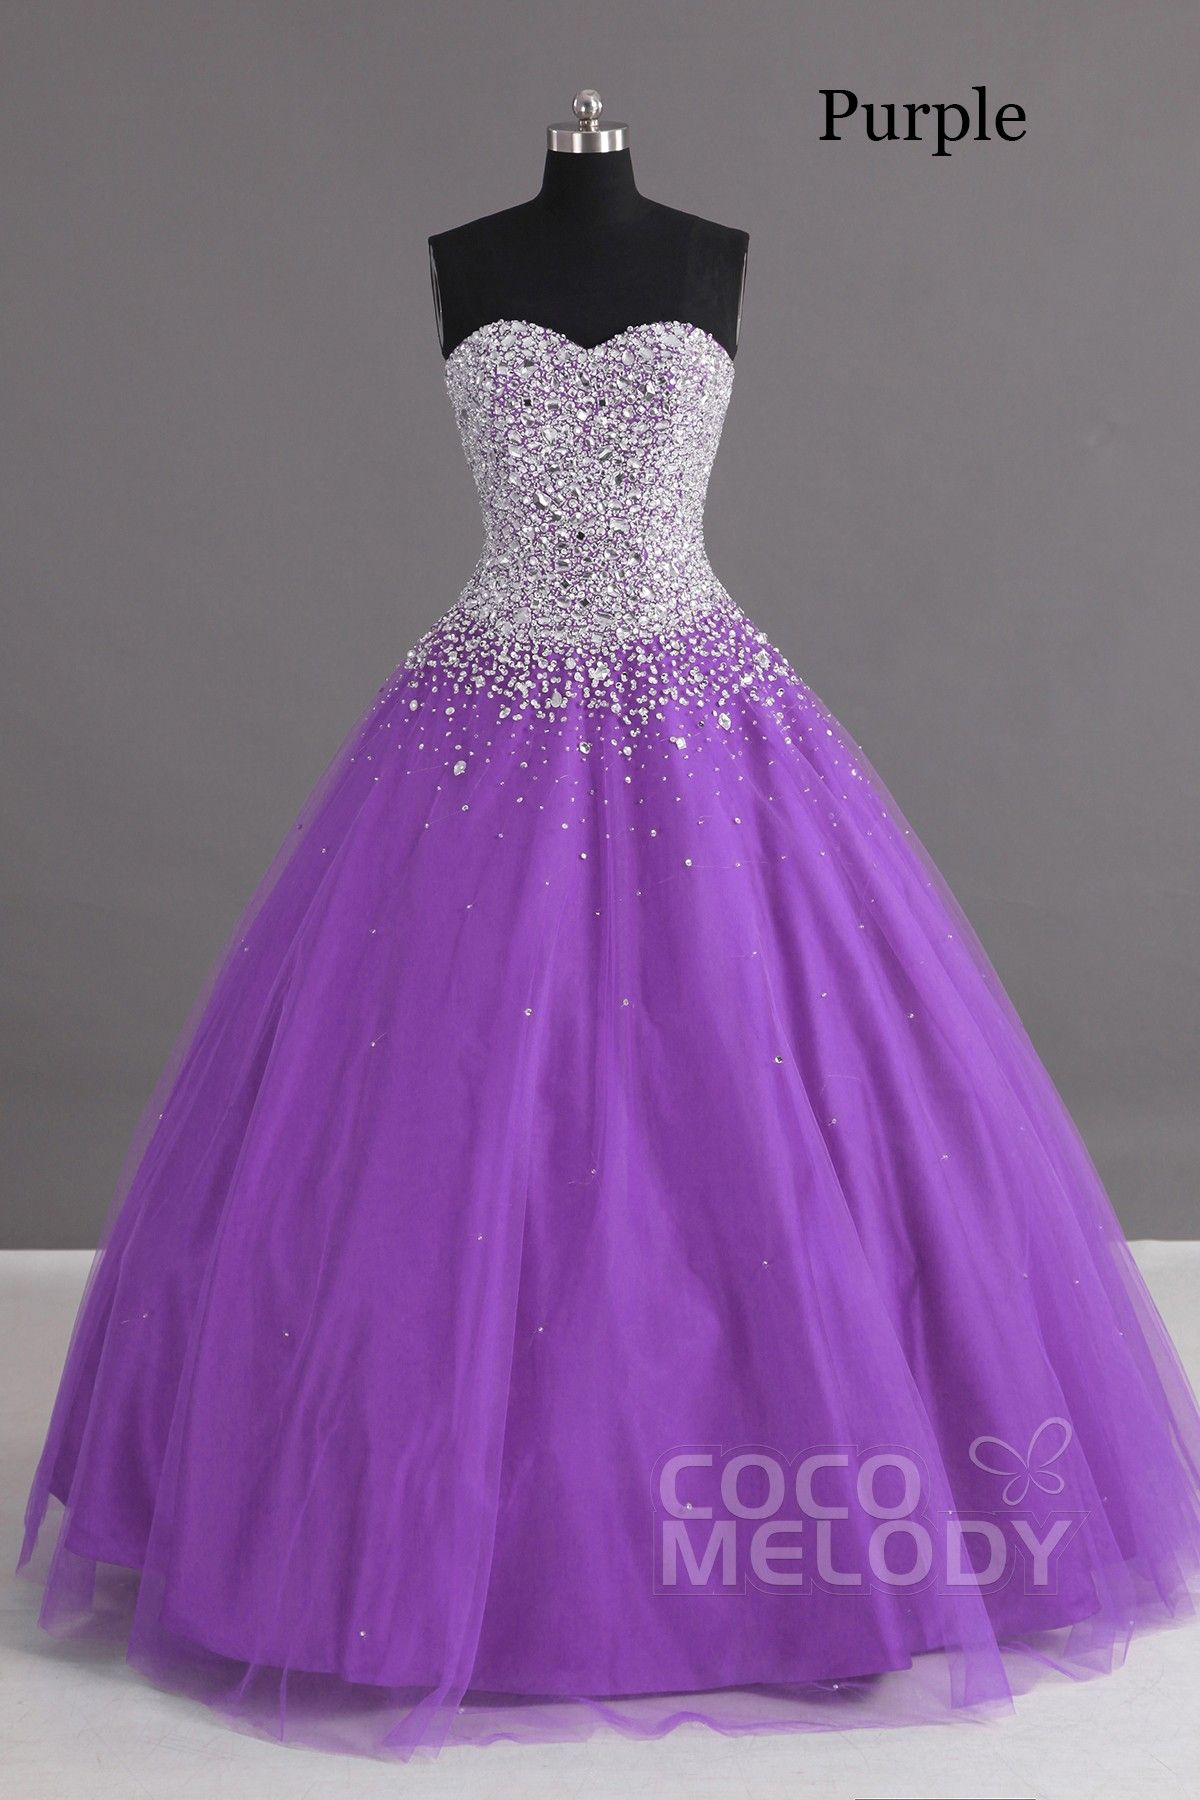 095d31bc60 Charming Ball Gown Sweetheart Floor Length Tulle Lace-up Corset Quinceanera  Dress with Crystals COLF1400F